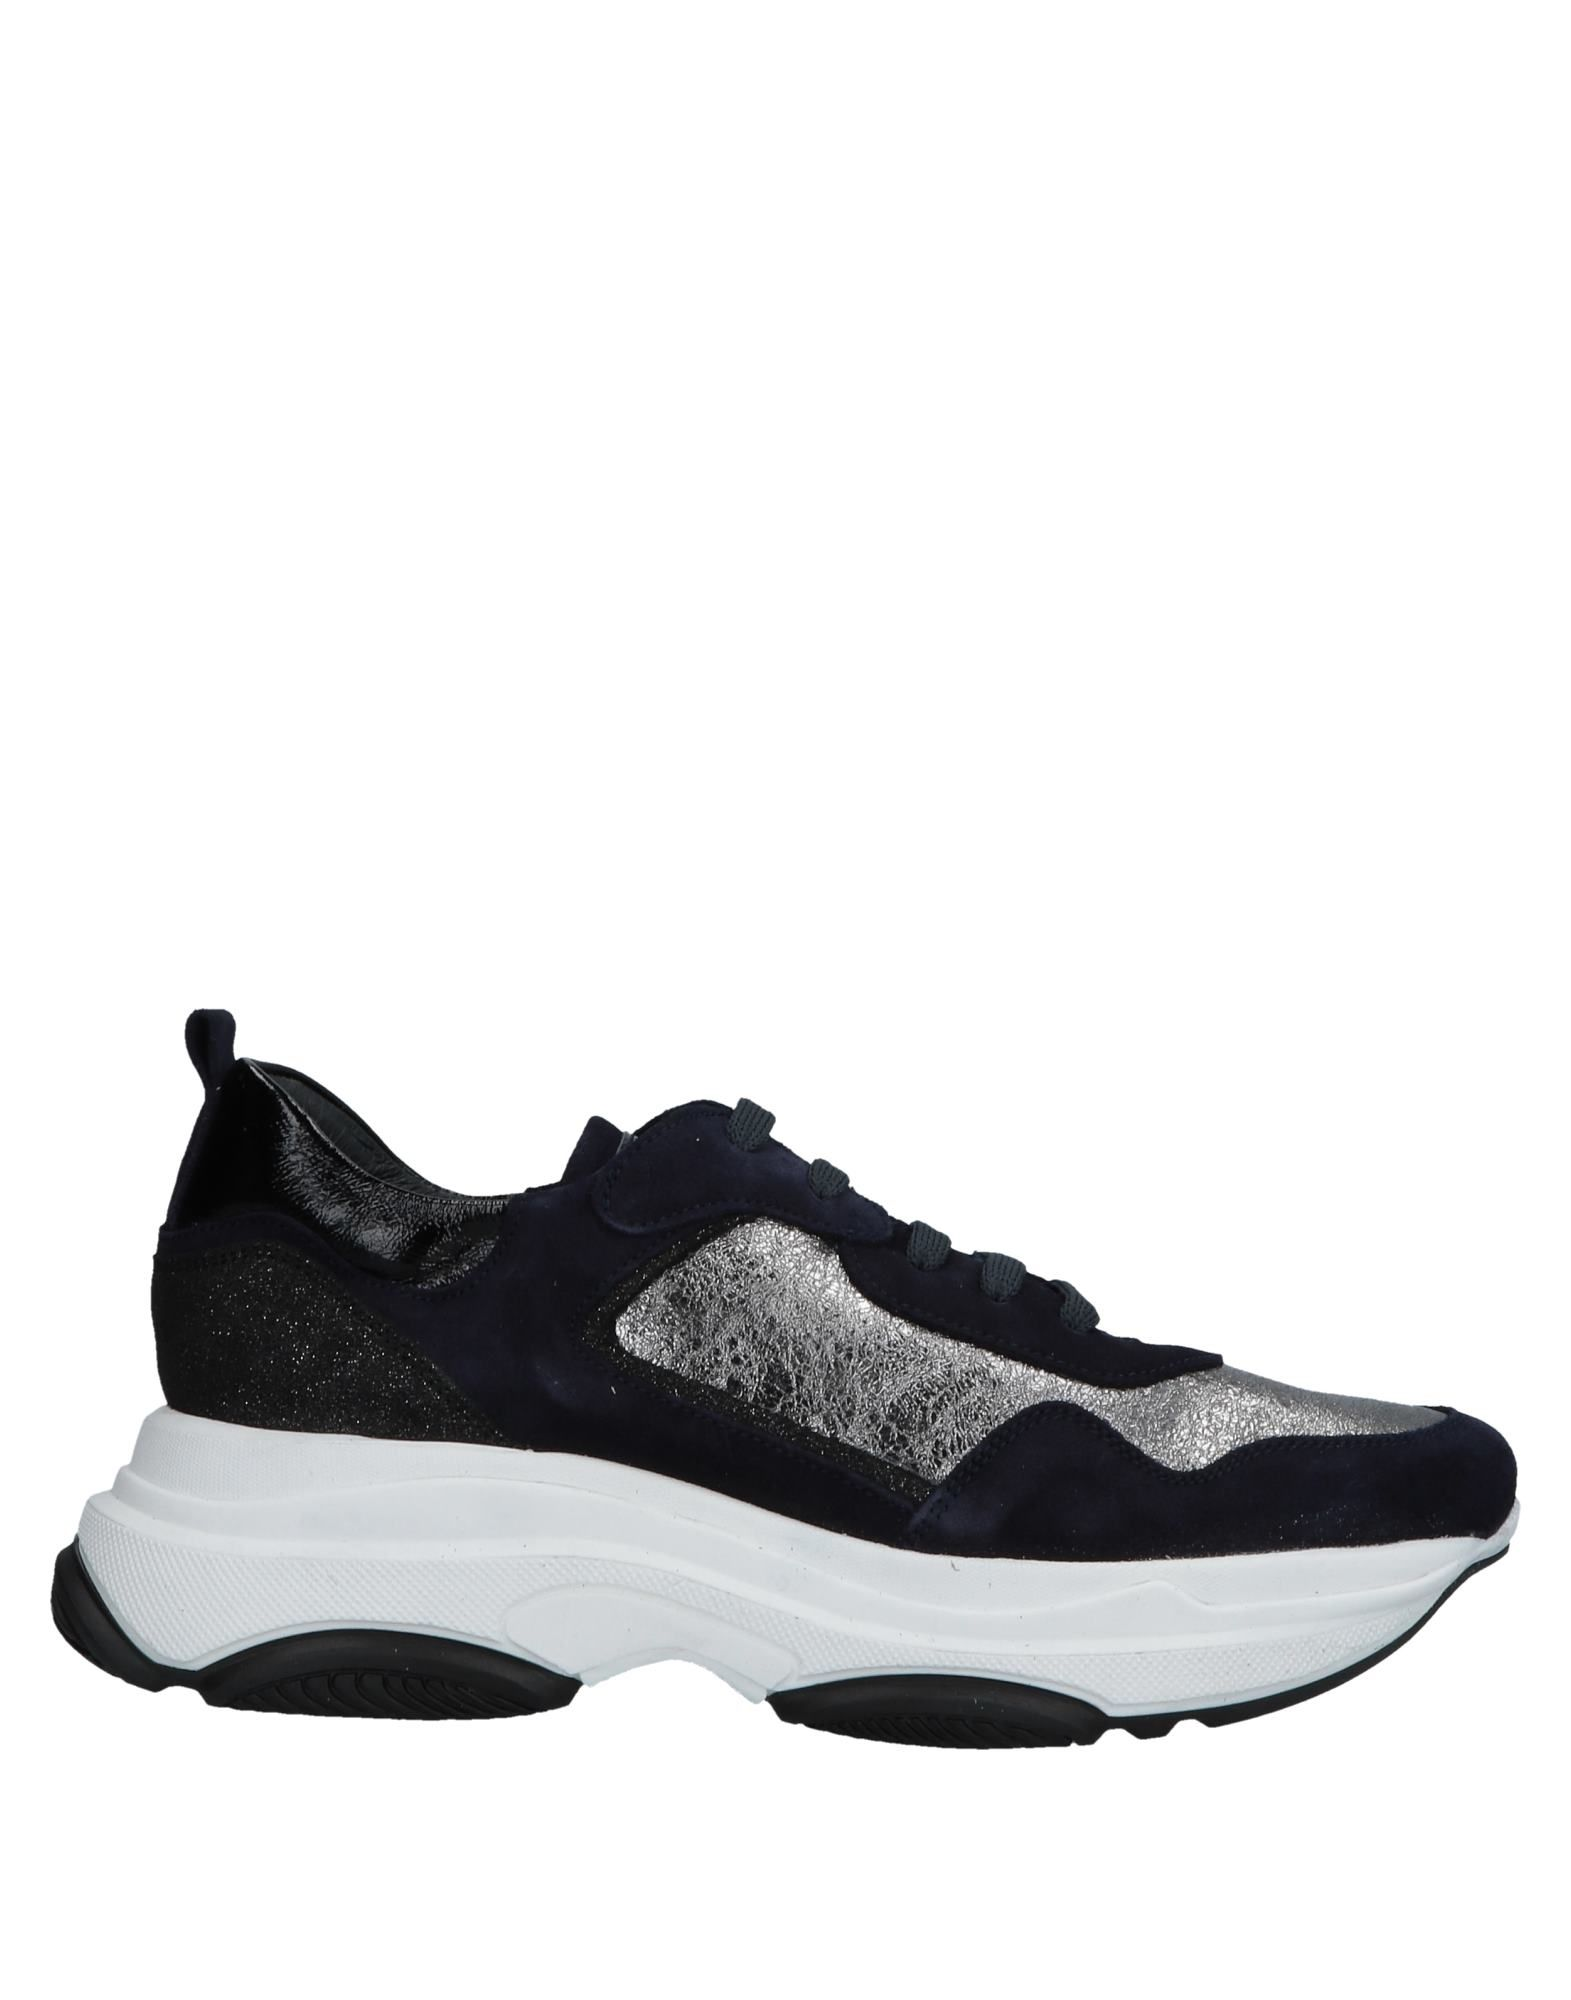 Kanna Sneakers - Women Kanna Sneakers - online on  Canada - Sneakers 11570134FU 863a38